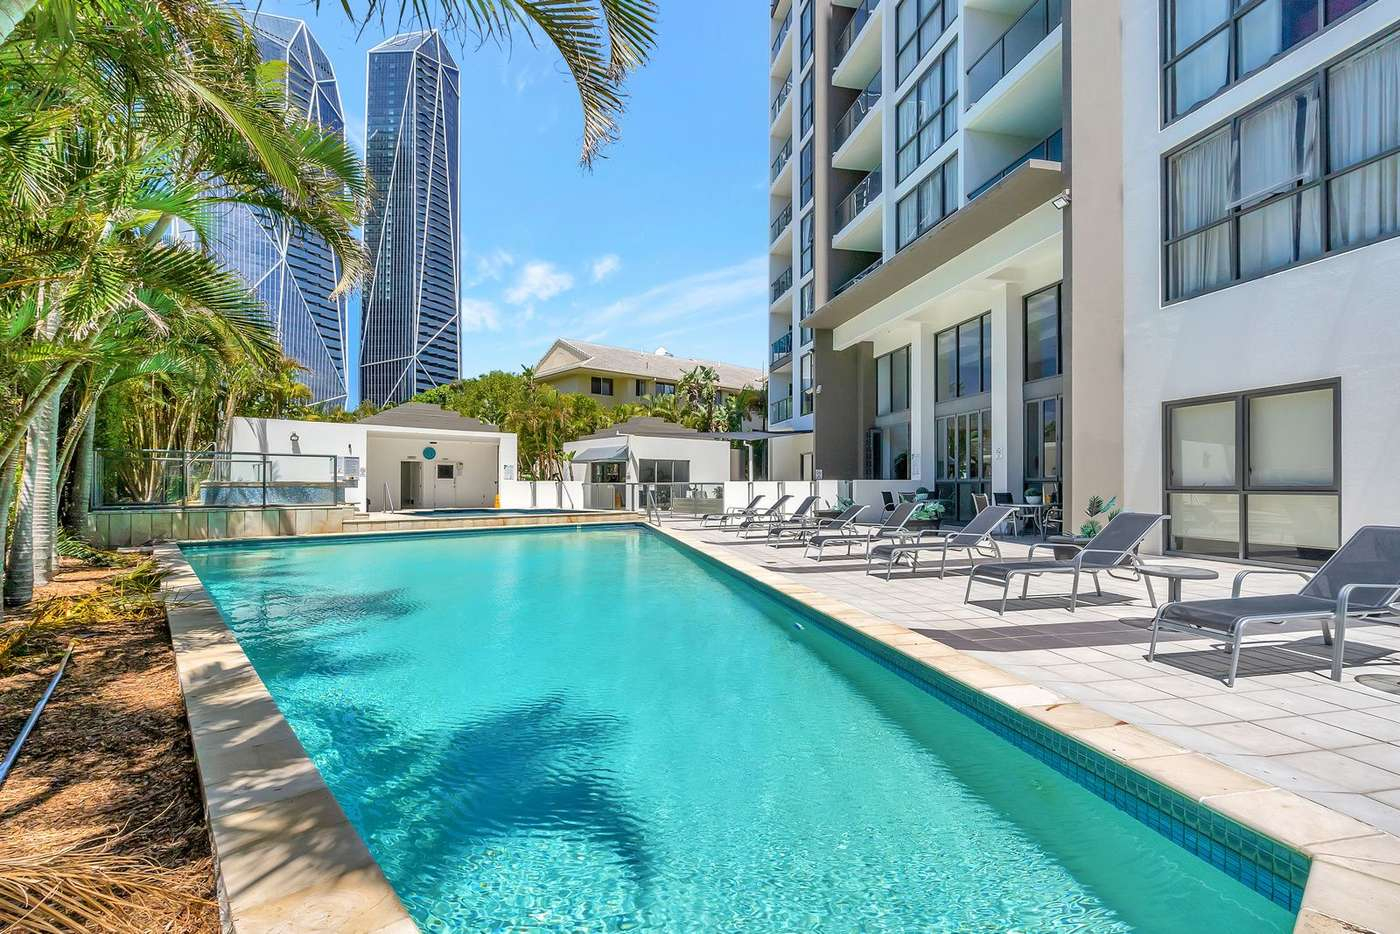 Main view of Homely unit listing, 802/2865 Gold Coast Highway, Surfers Paradise, QLD 4217